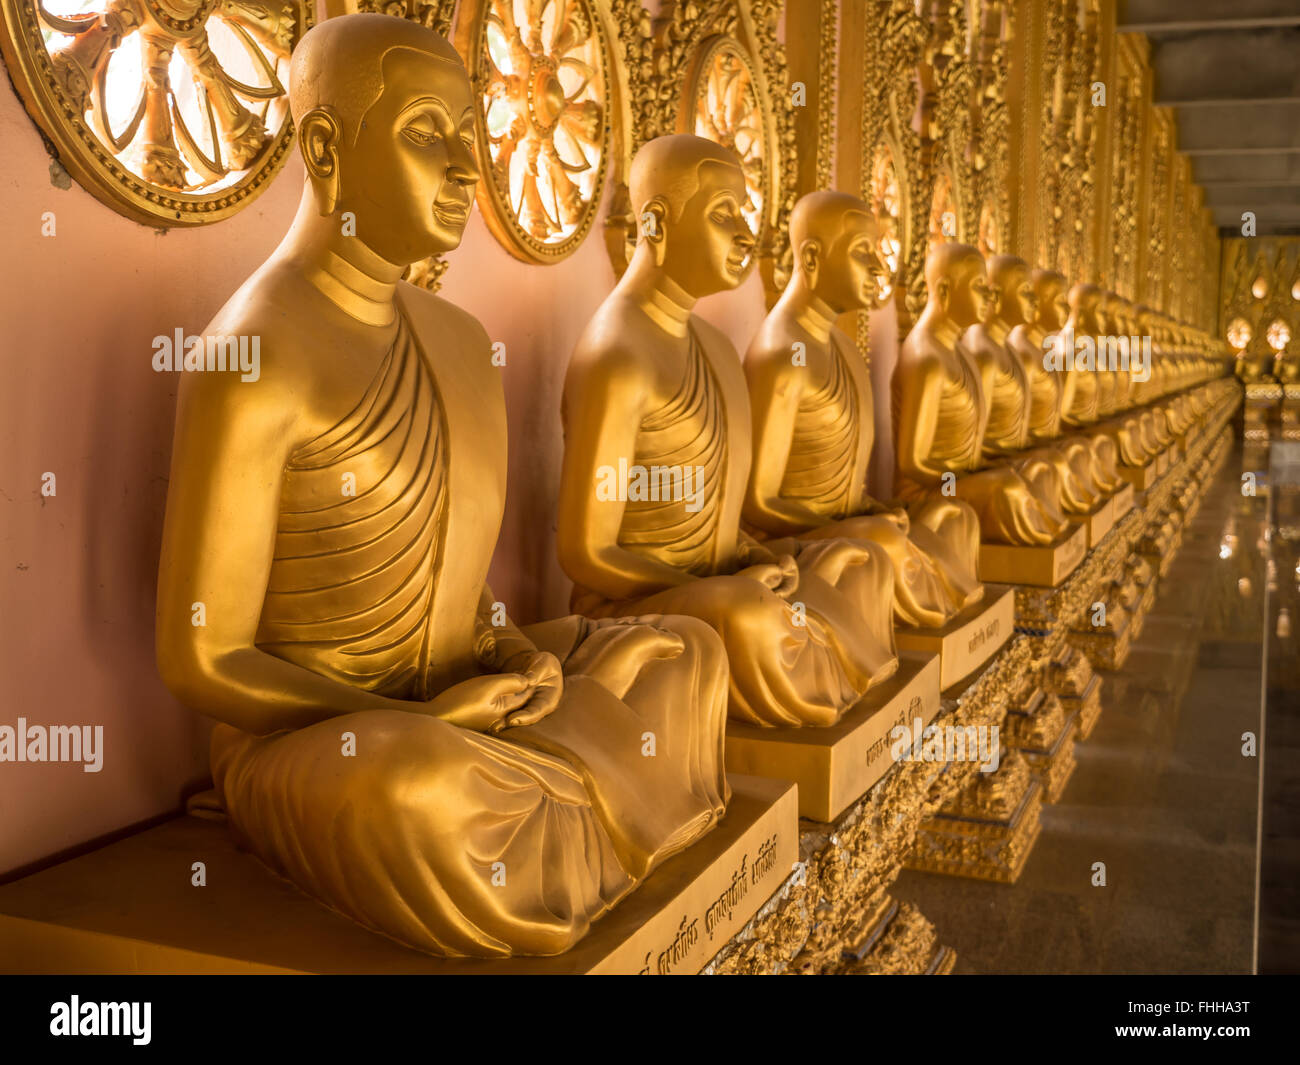 Alignment of Buddhas statues in temple, Thailand - Stock Image